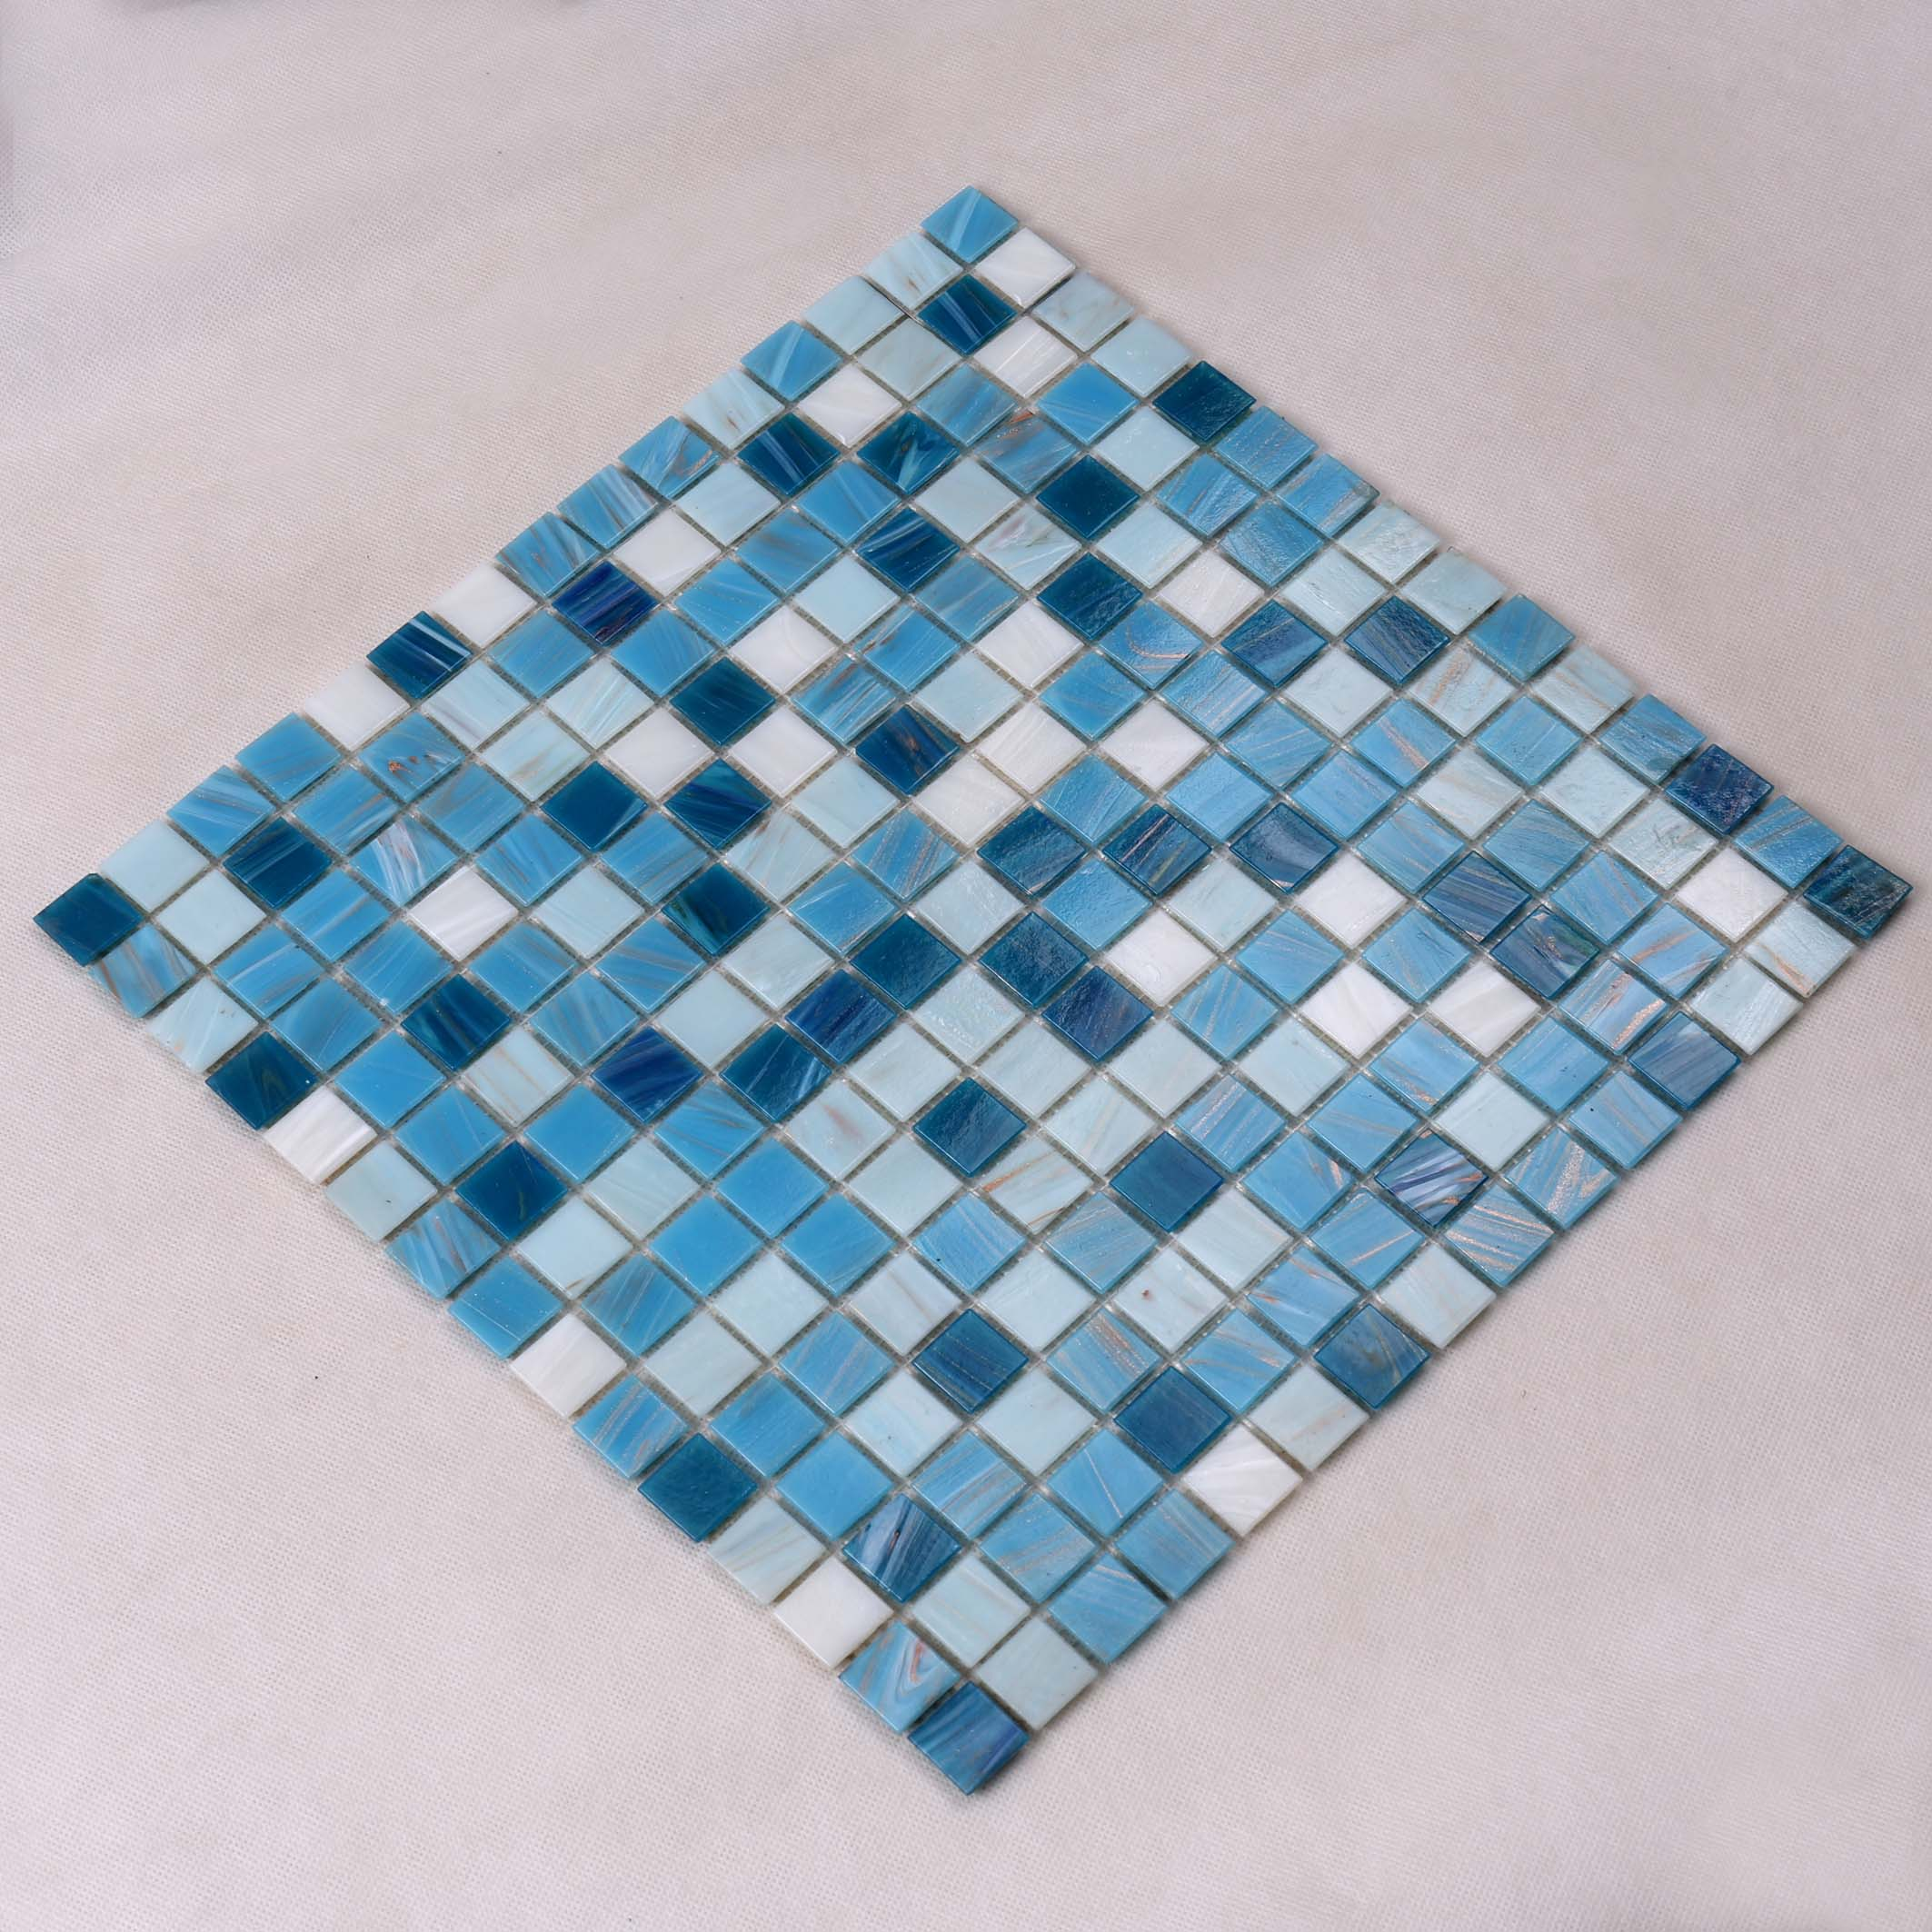 Heng Xing-Swimming Pool Tiles Supplier, Swimming Pool Tile Suppliers | Heng Xing-2